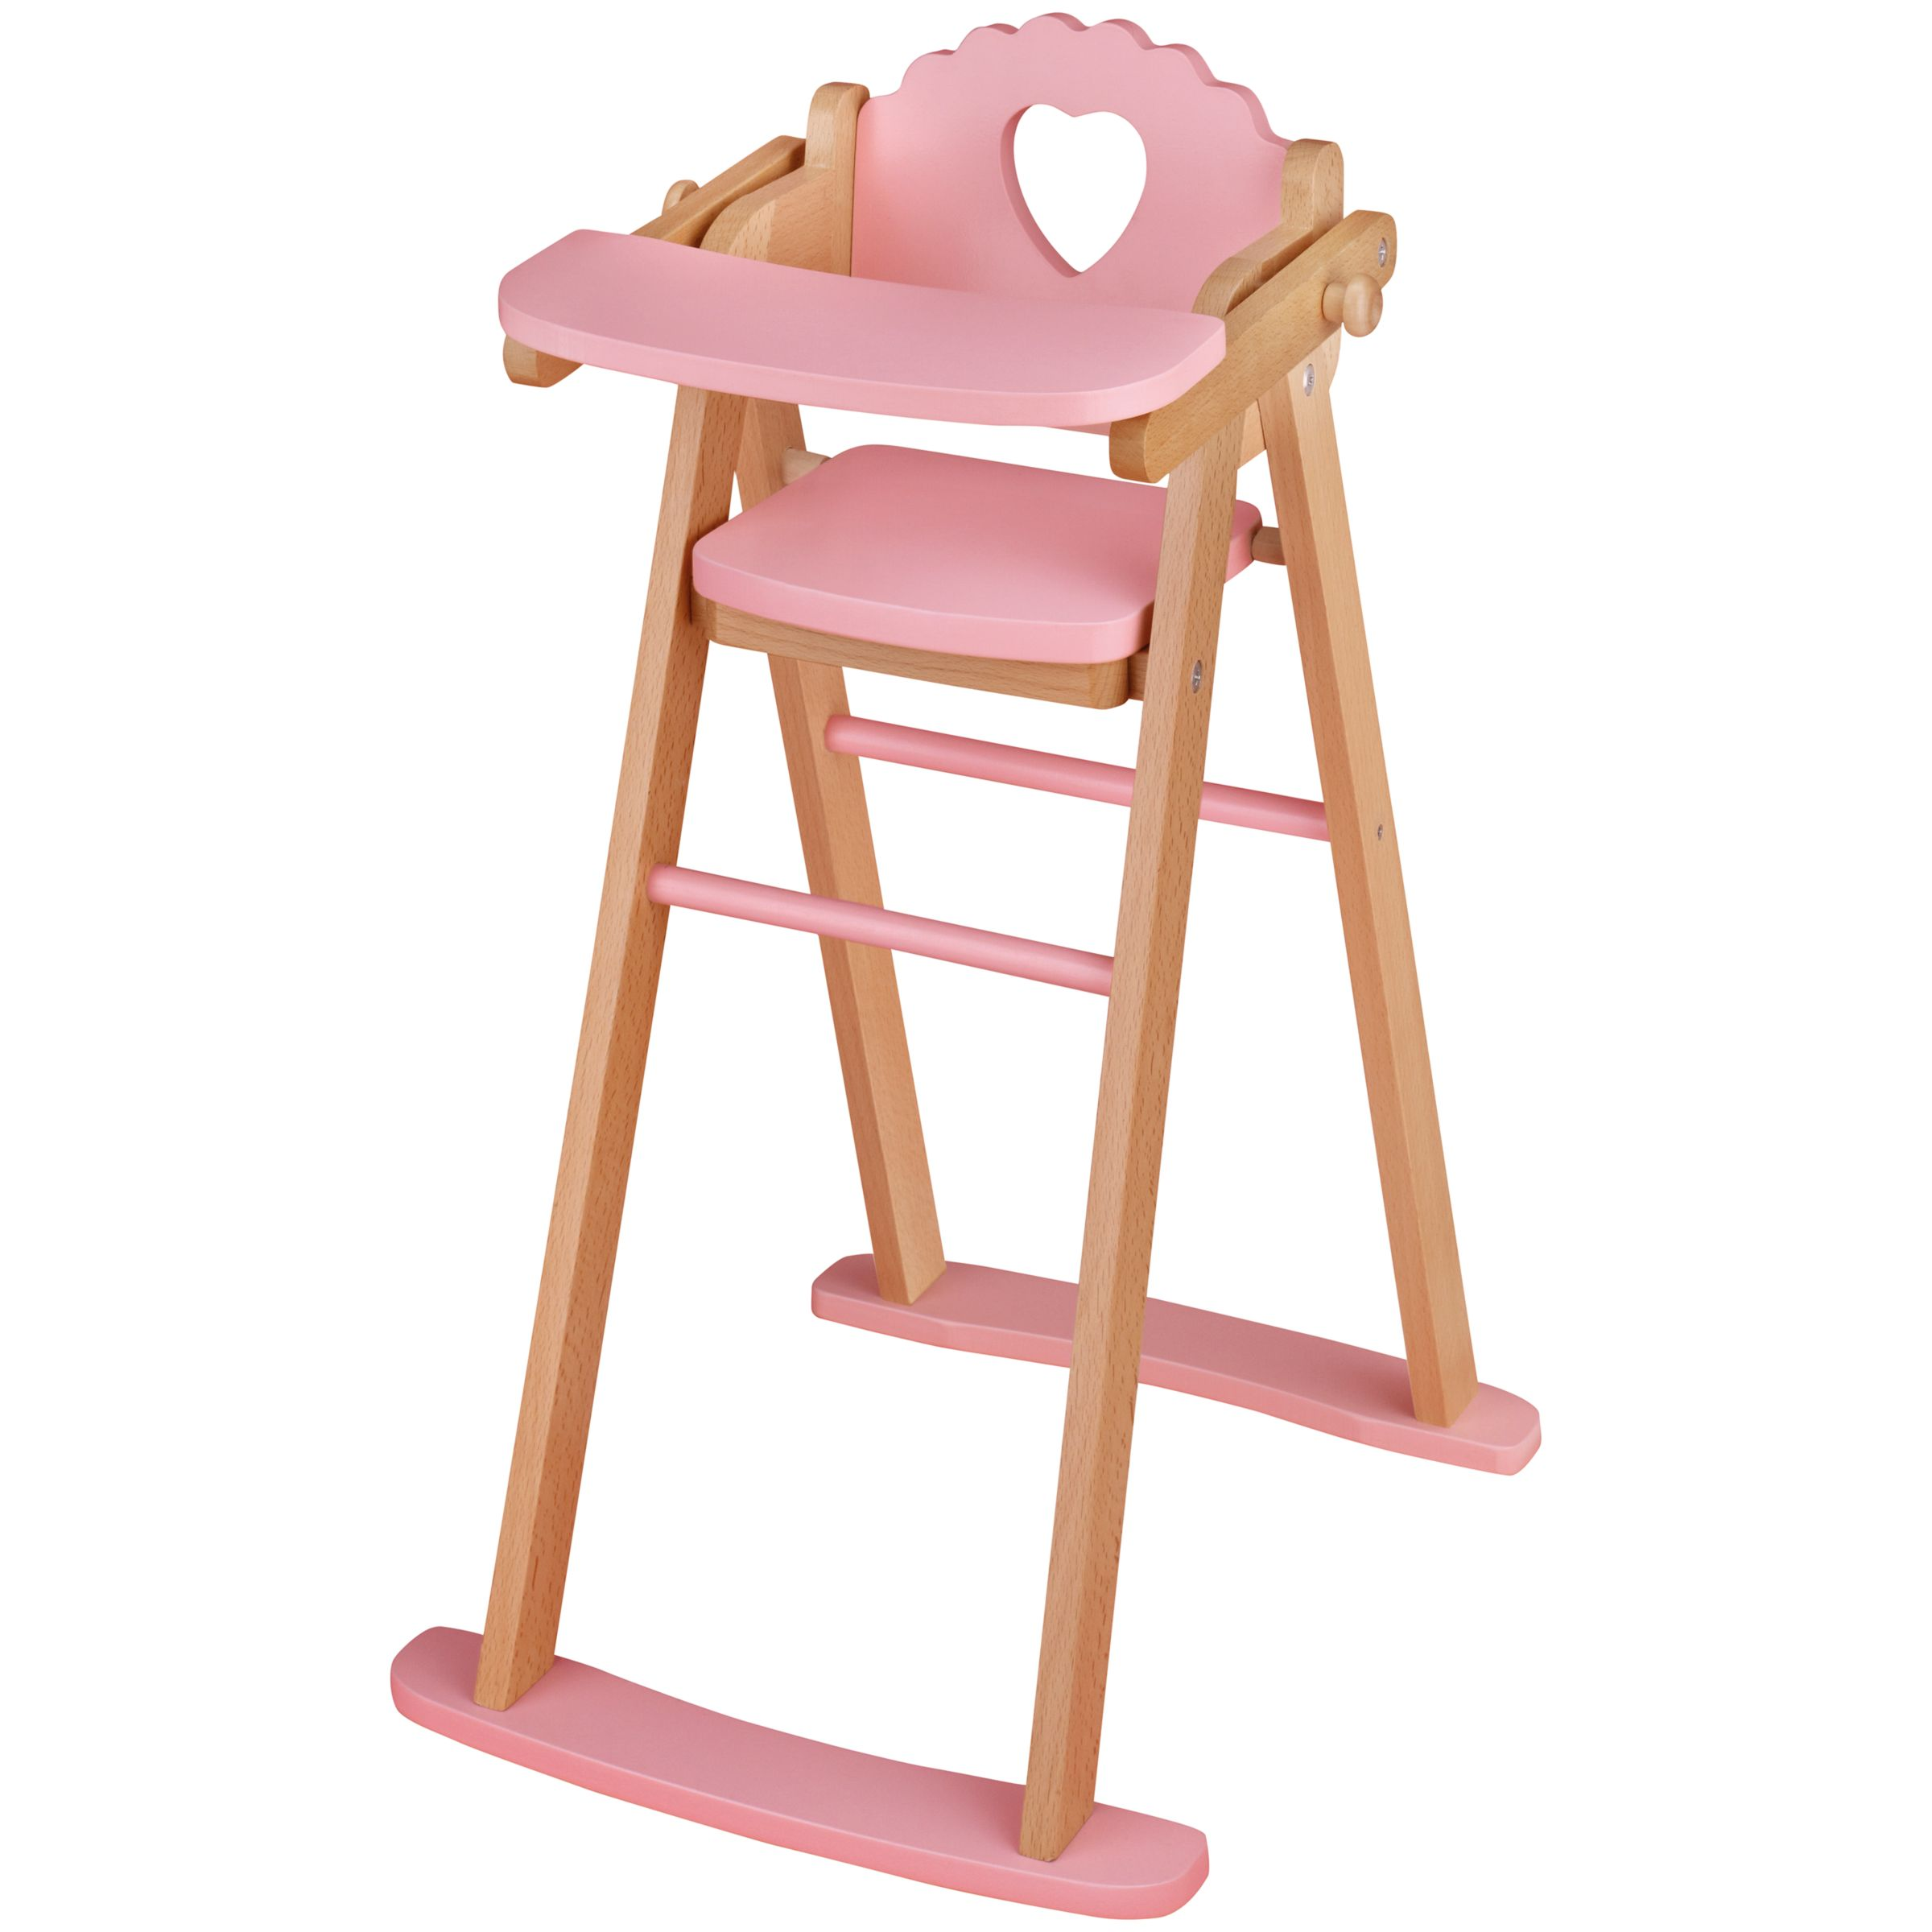 High Chair Deals Buy Cheap Doll High Chair Compare Dolls Prices For Best